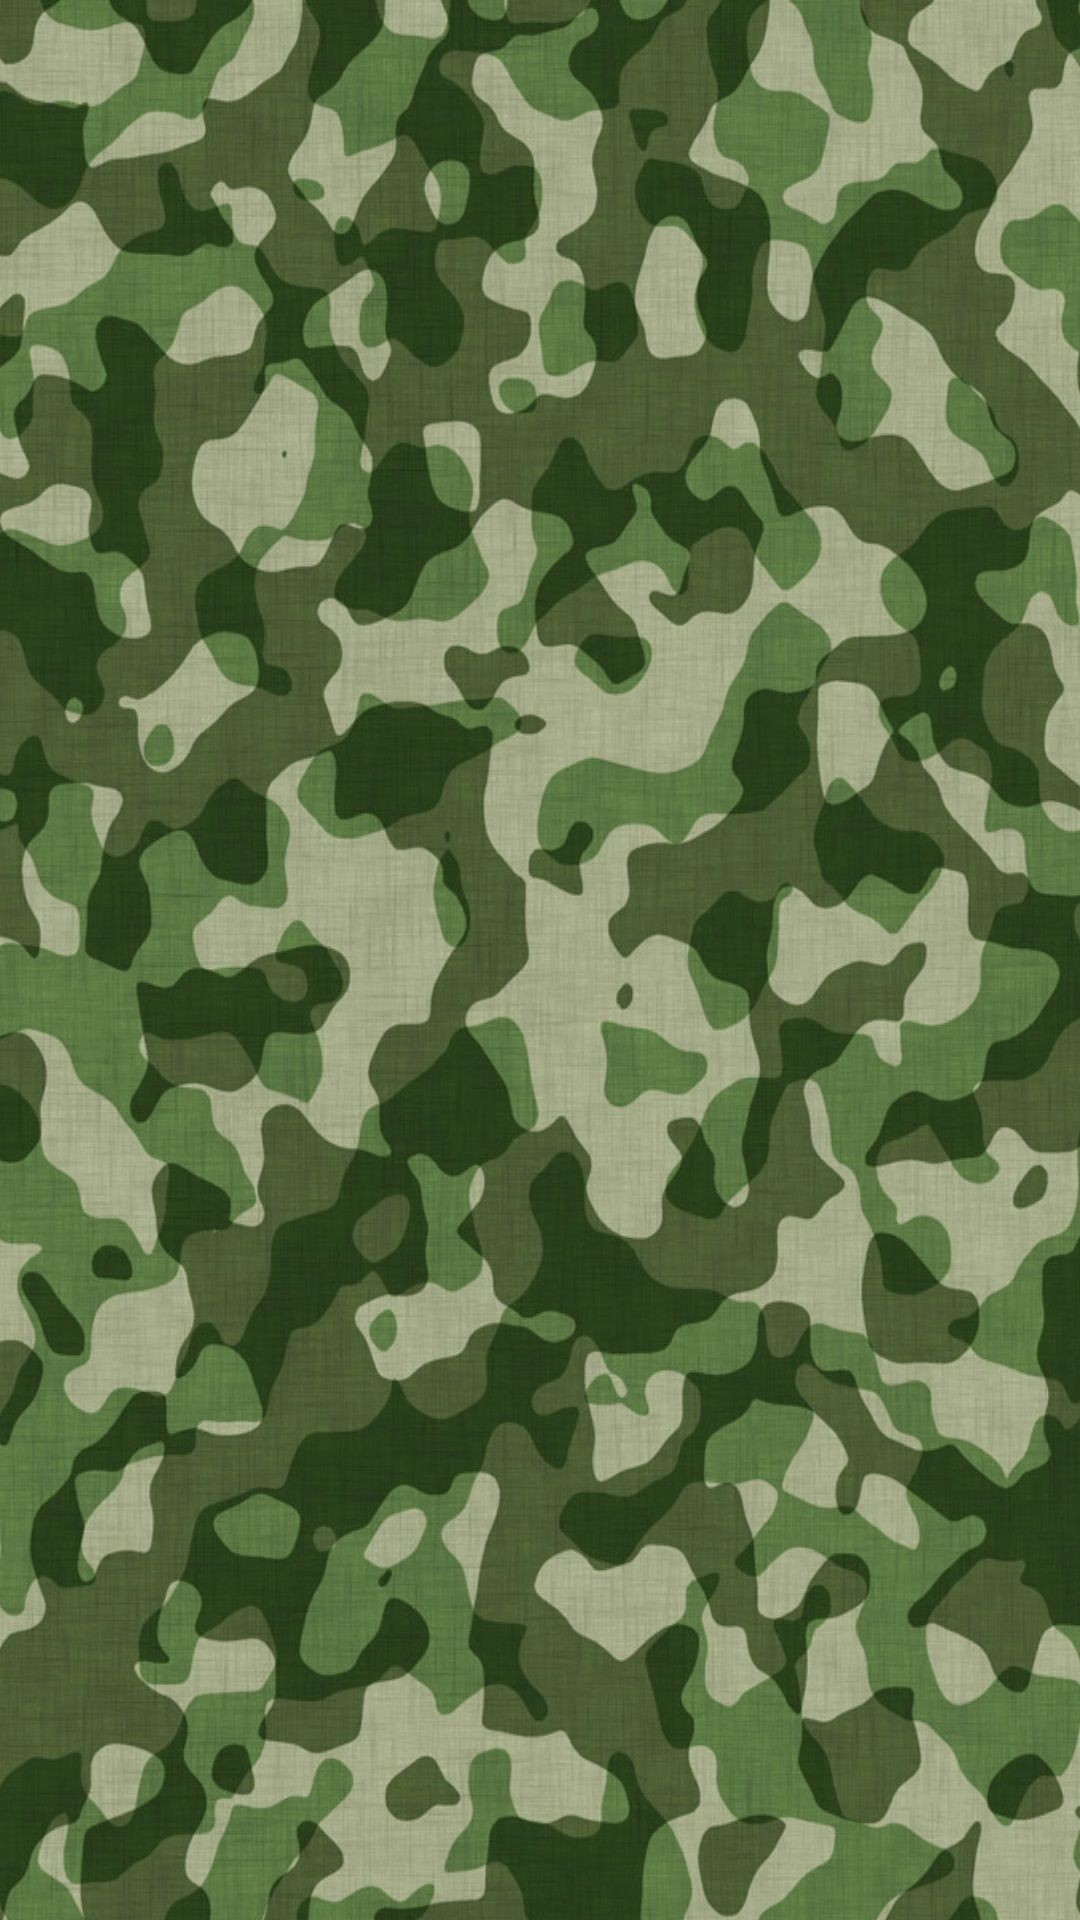 1080x1920, Camouflage Wallpaper For Iphone Or Android - Camo Wallpaper Ipad - HD Wallpaper